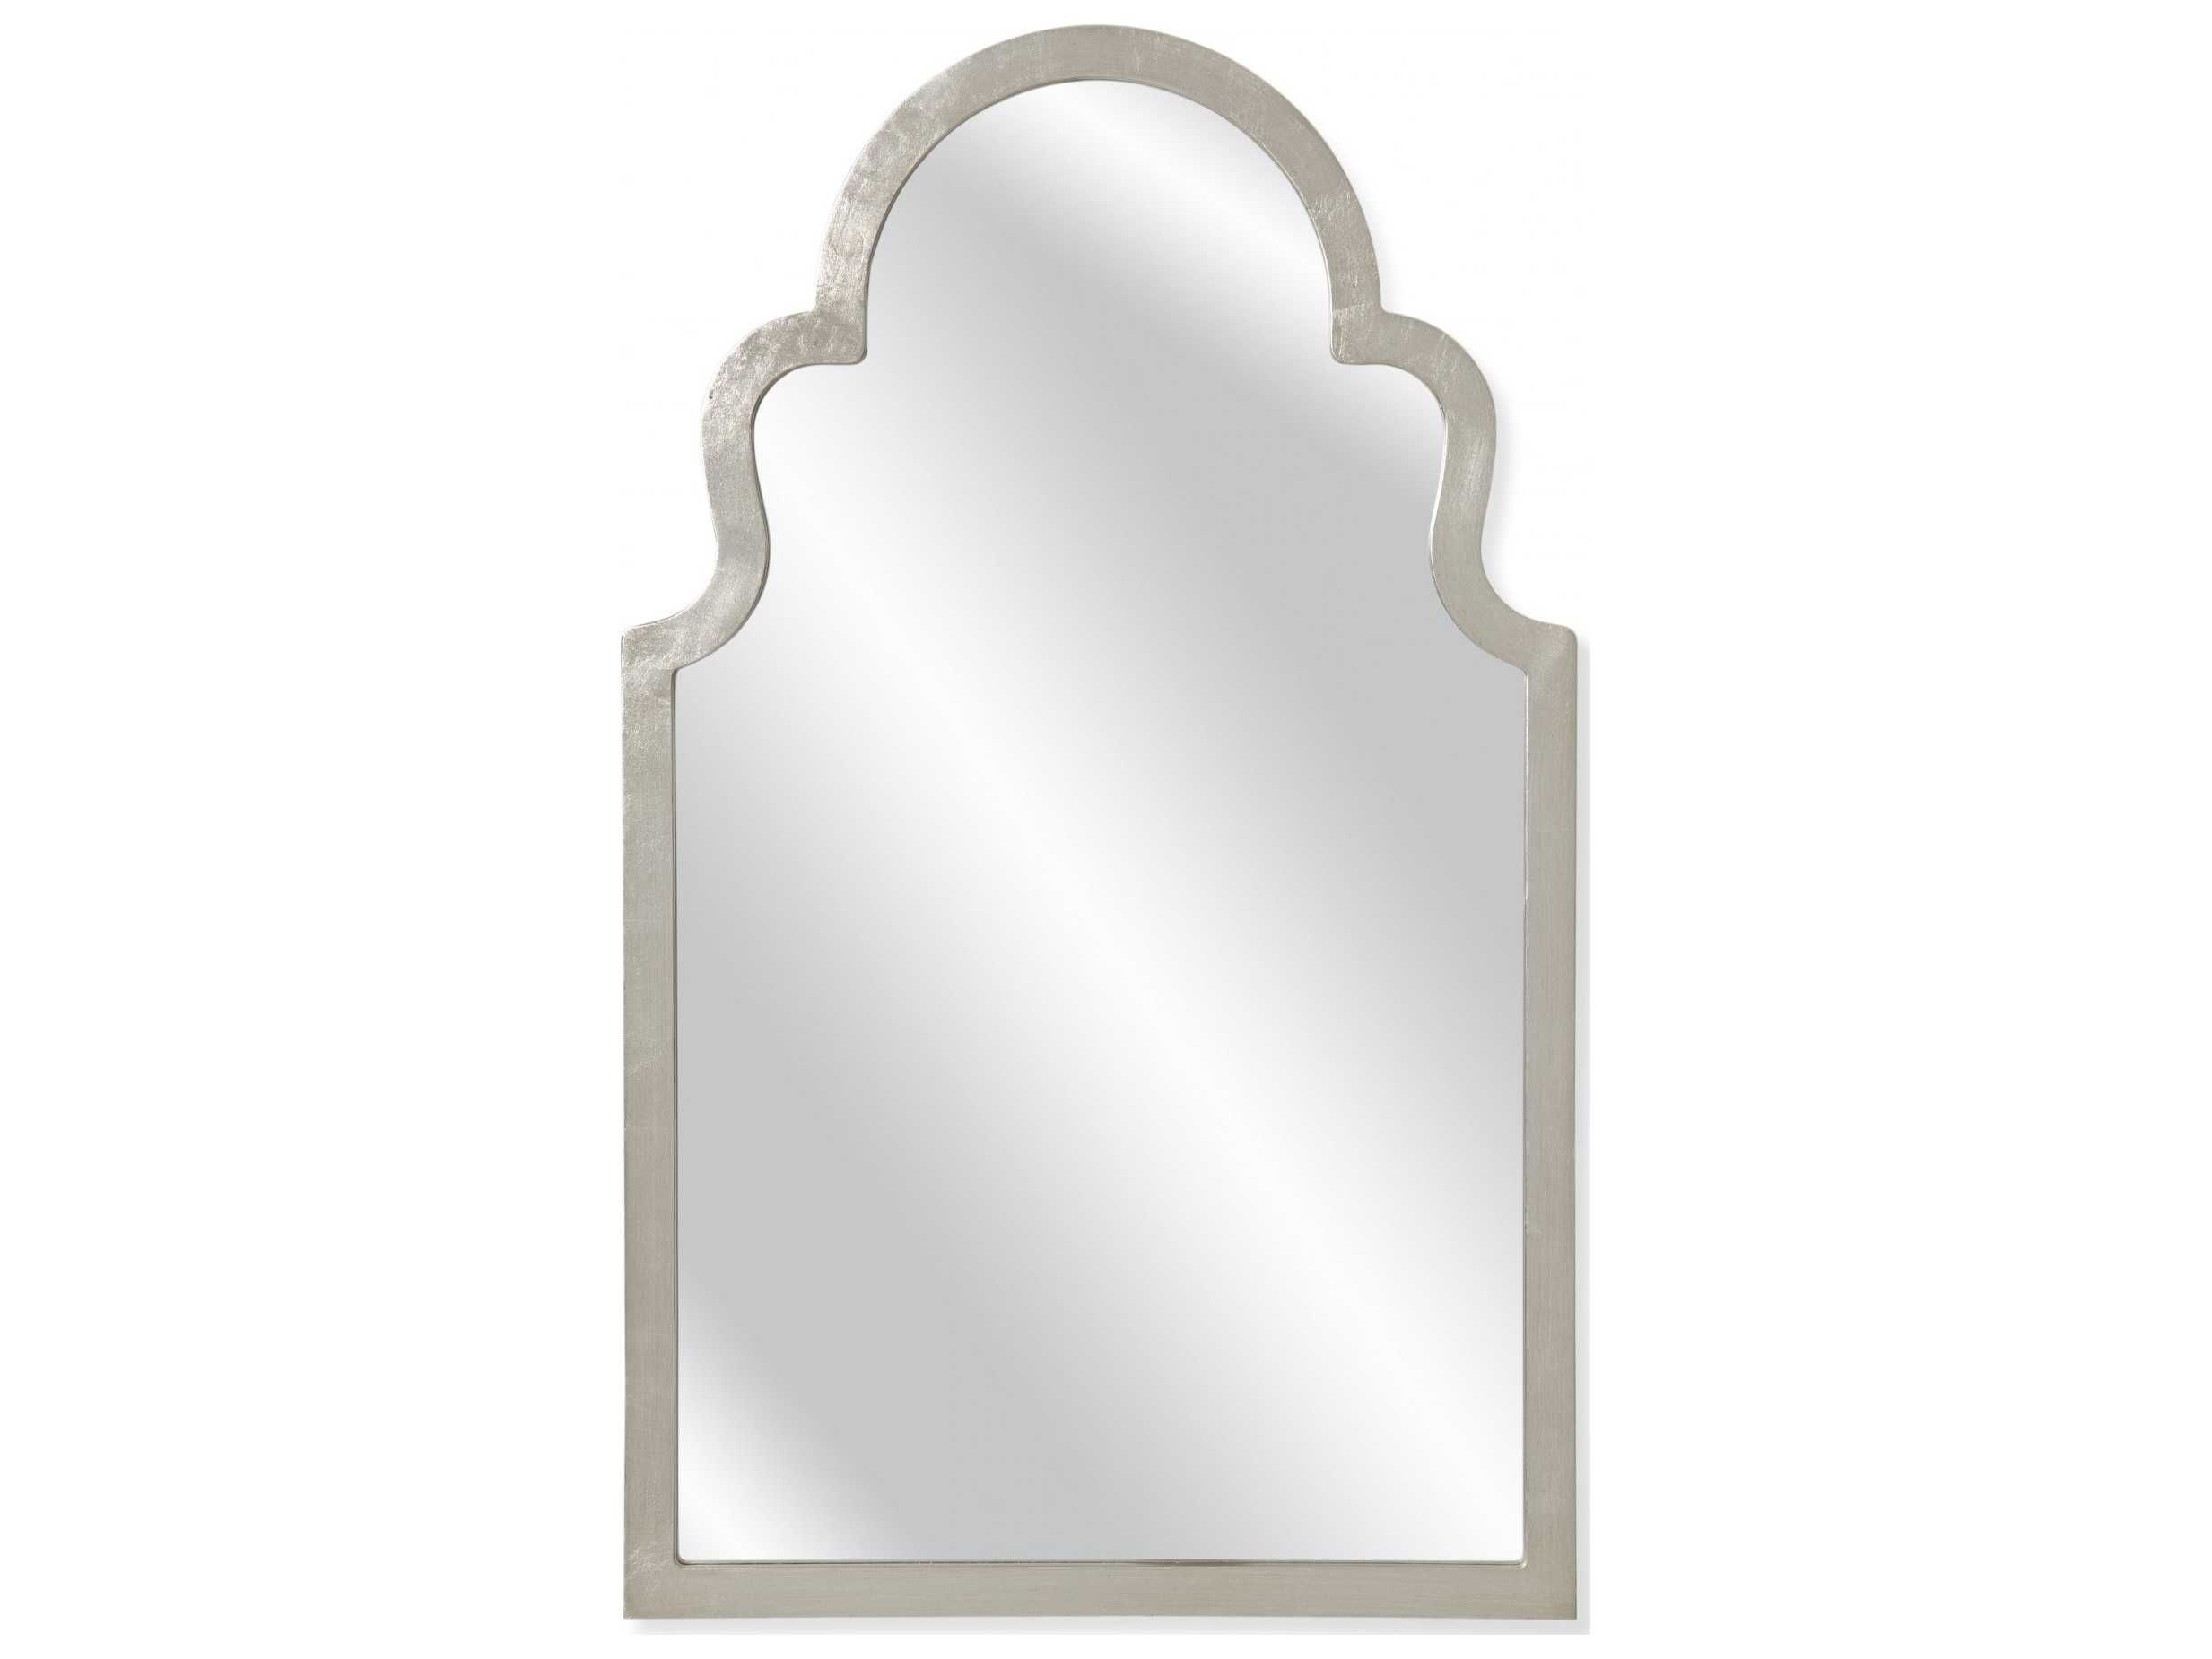 Most Recent Moseley Accent Mirrors Inside Bassett Mirror Old World 24 X 40 Mina Wall Mirror (View 11 of 20)